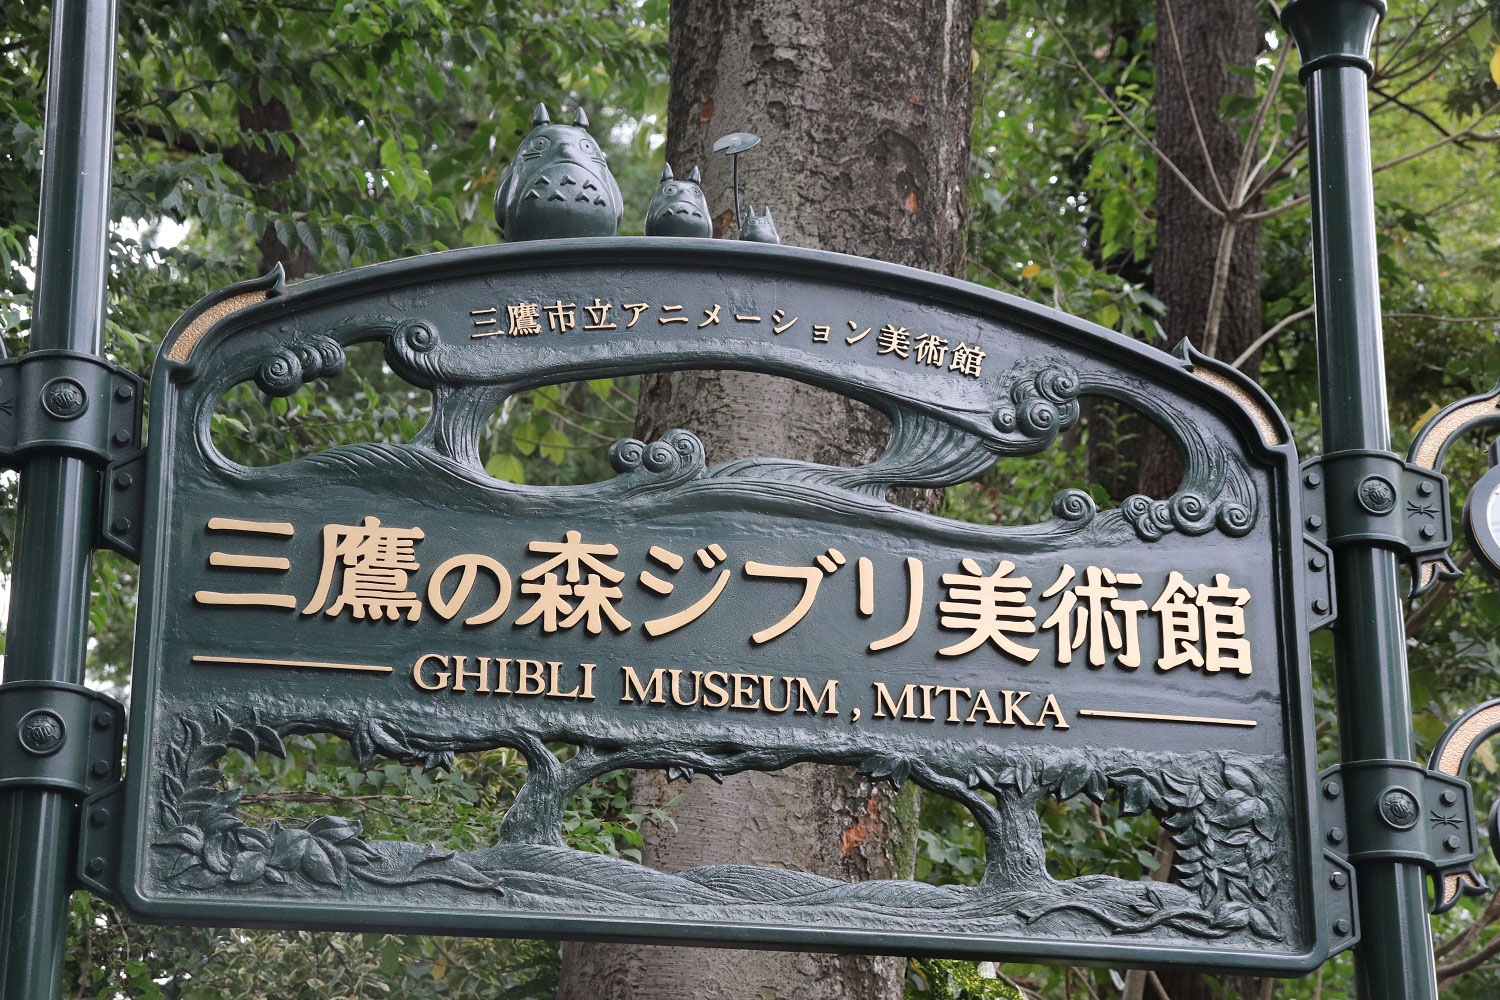 Highlight: the Ghibli Museum